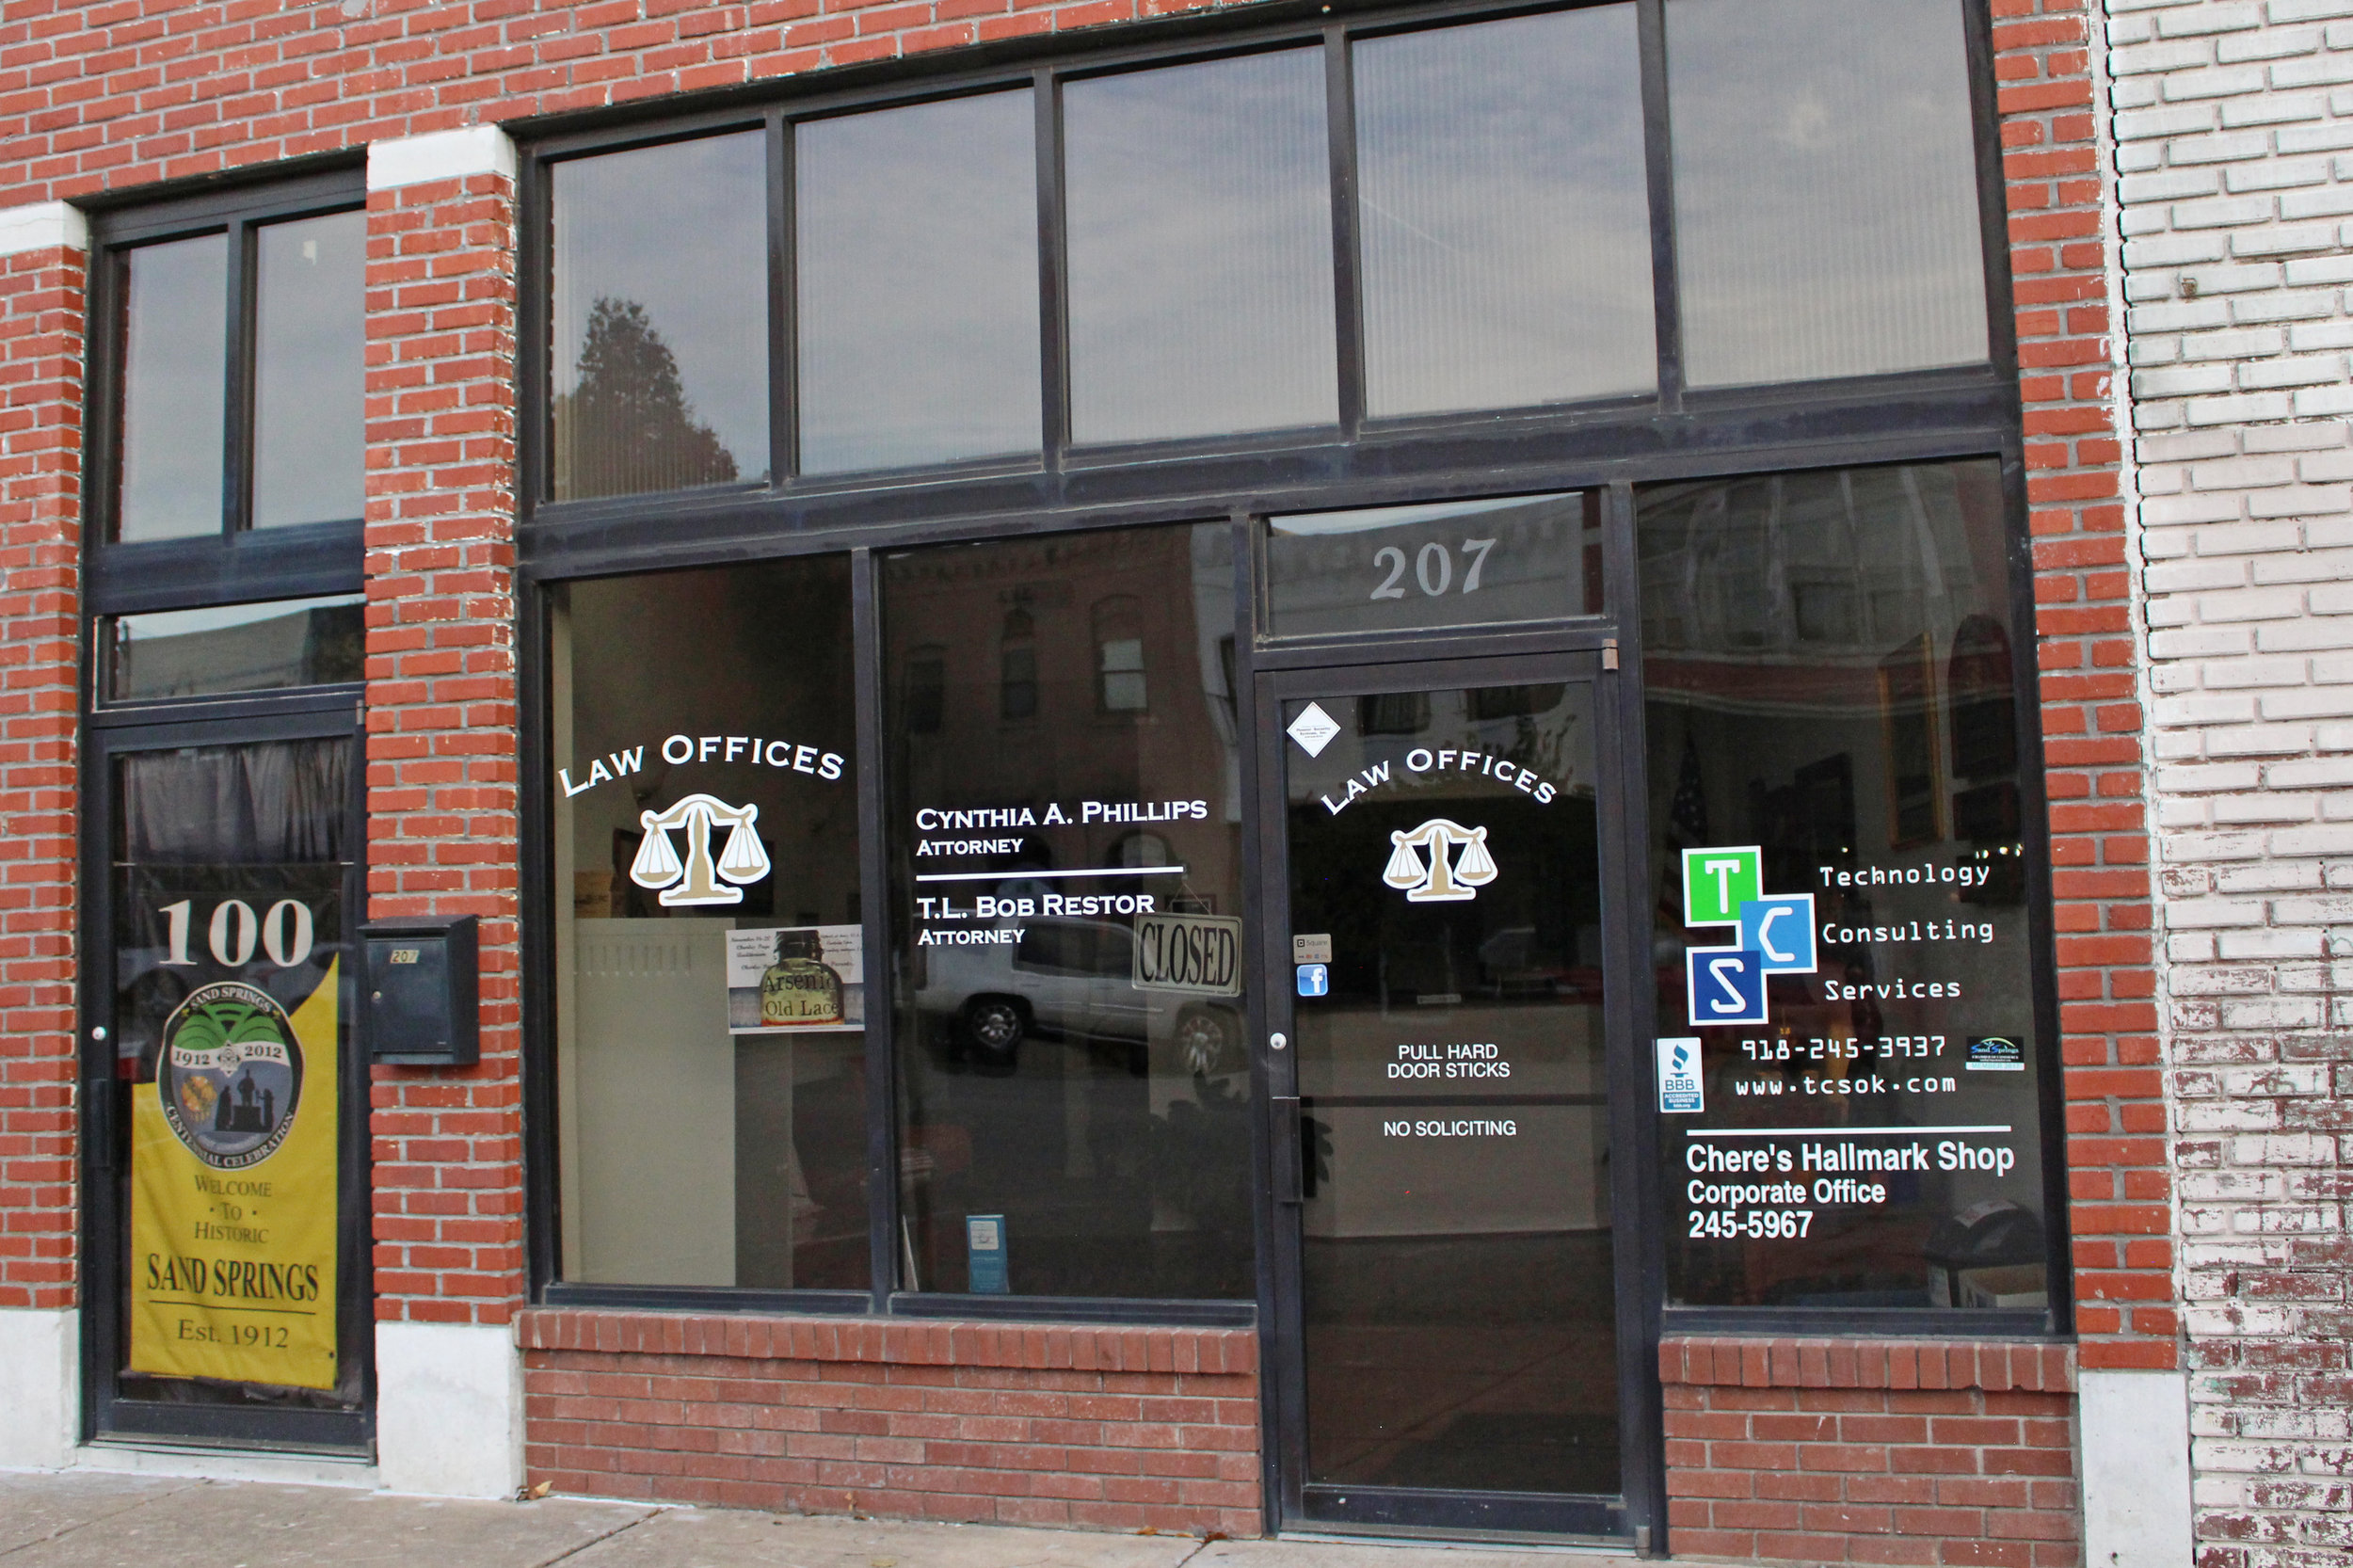 law offices of cynthia a. phillips and t.l. bob restor - downtown 207 north main street